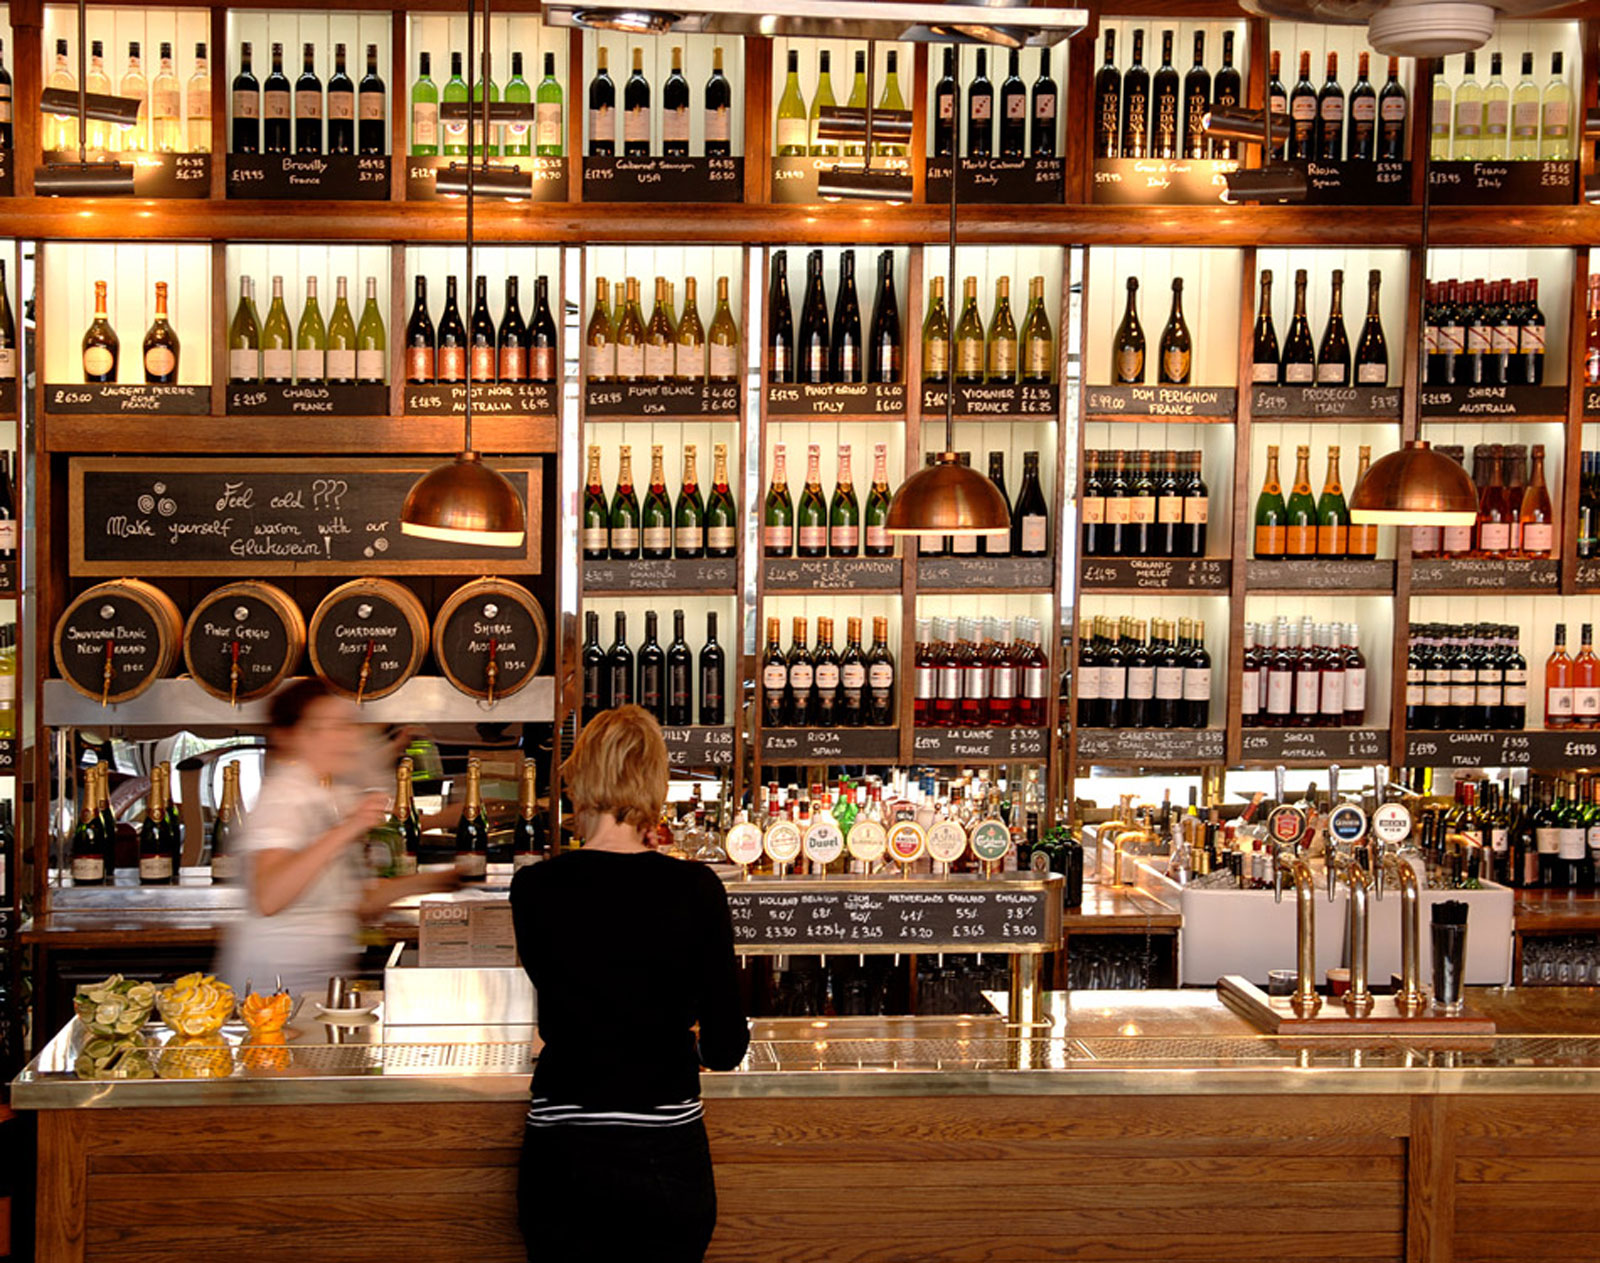 All Bar One Chiswell St - London